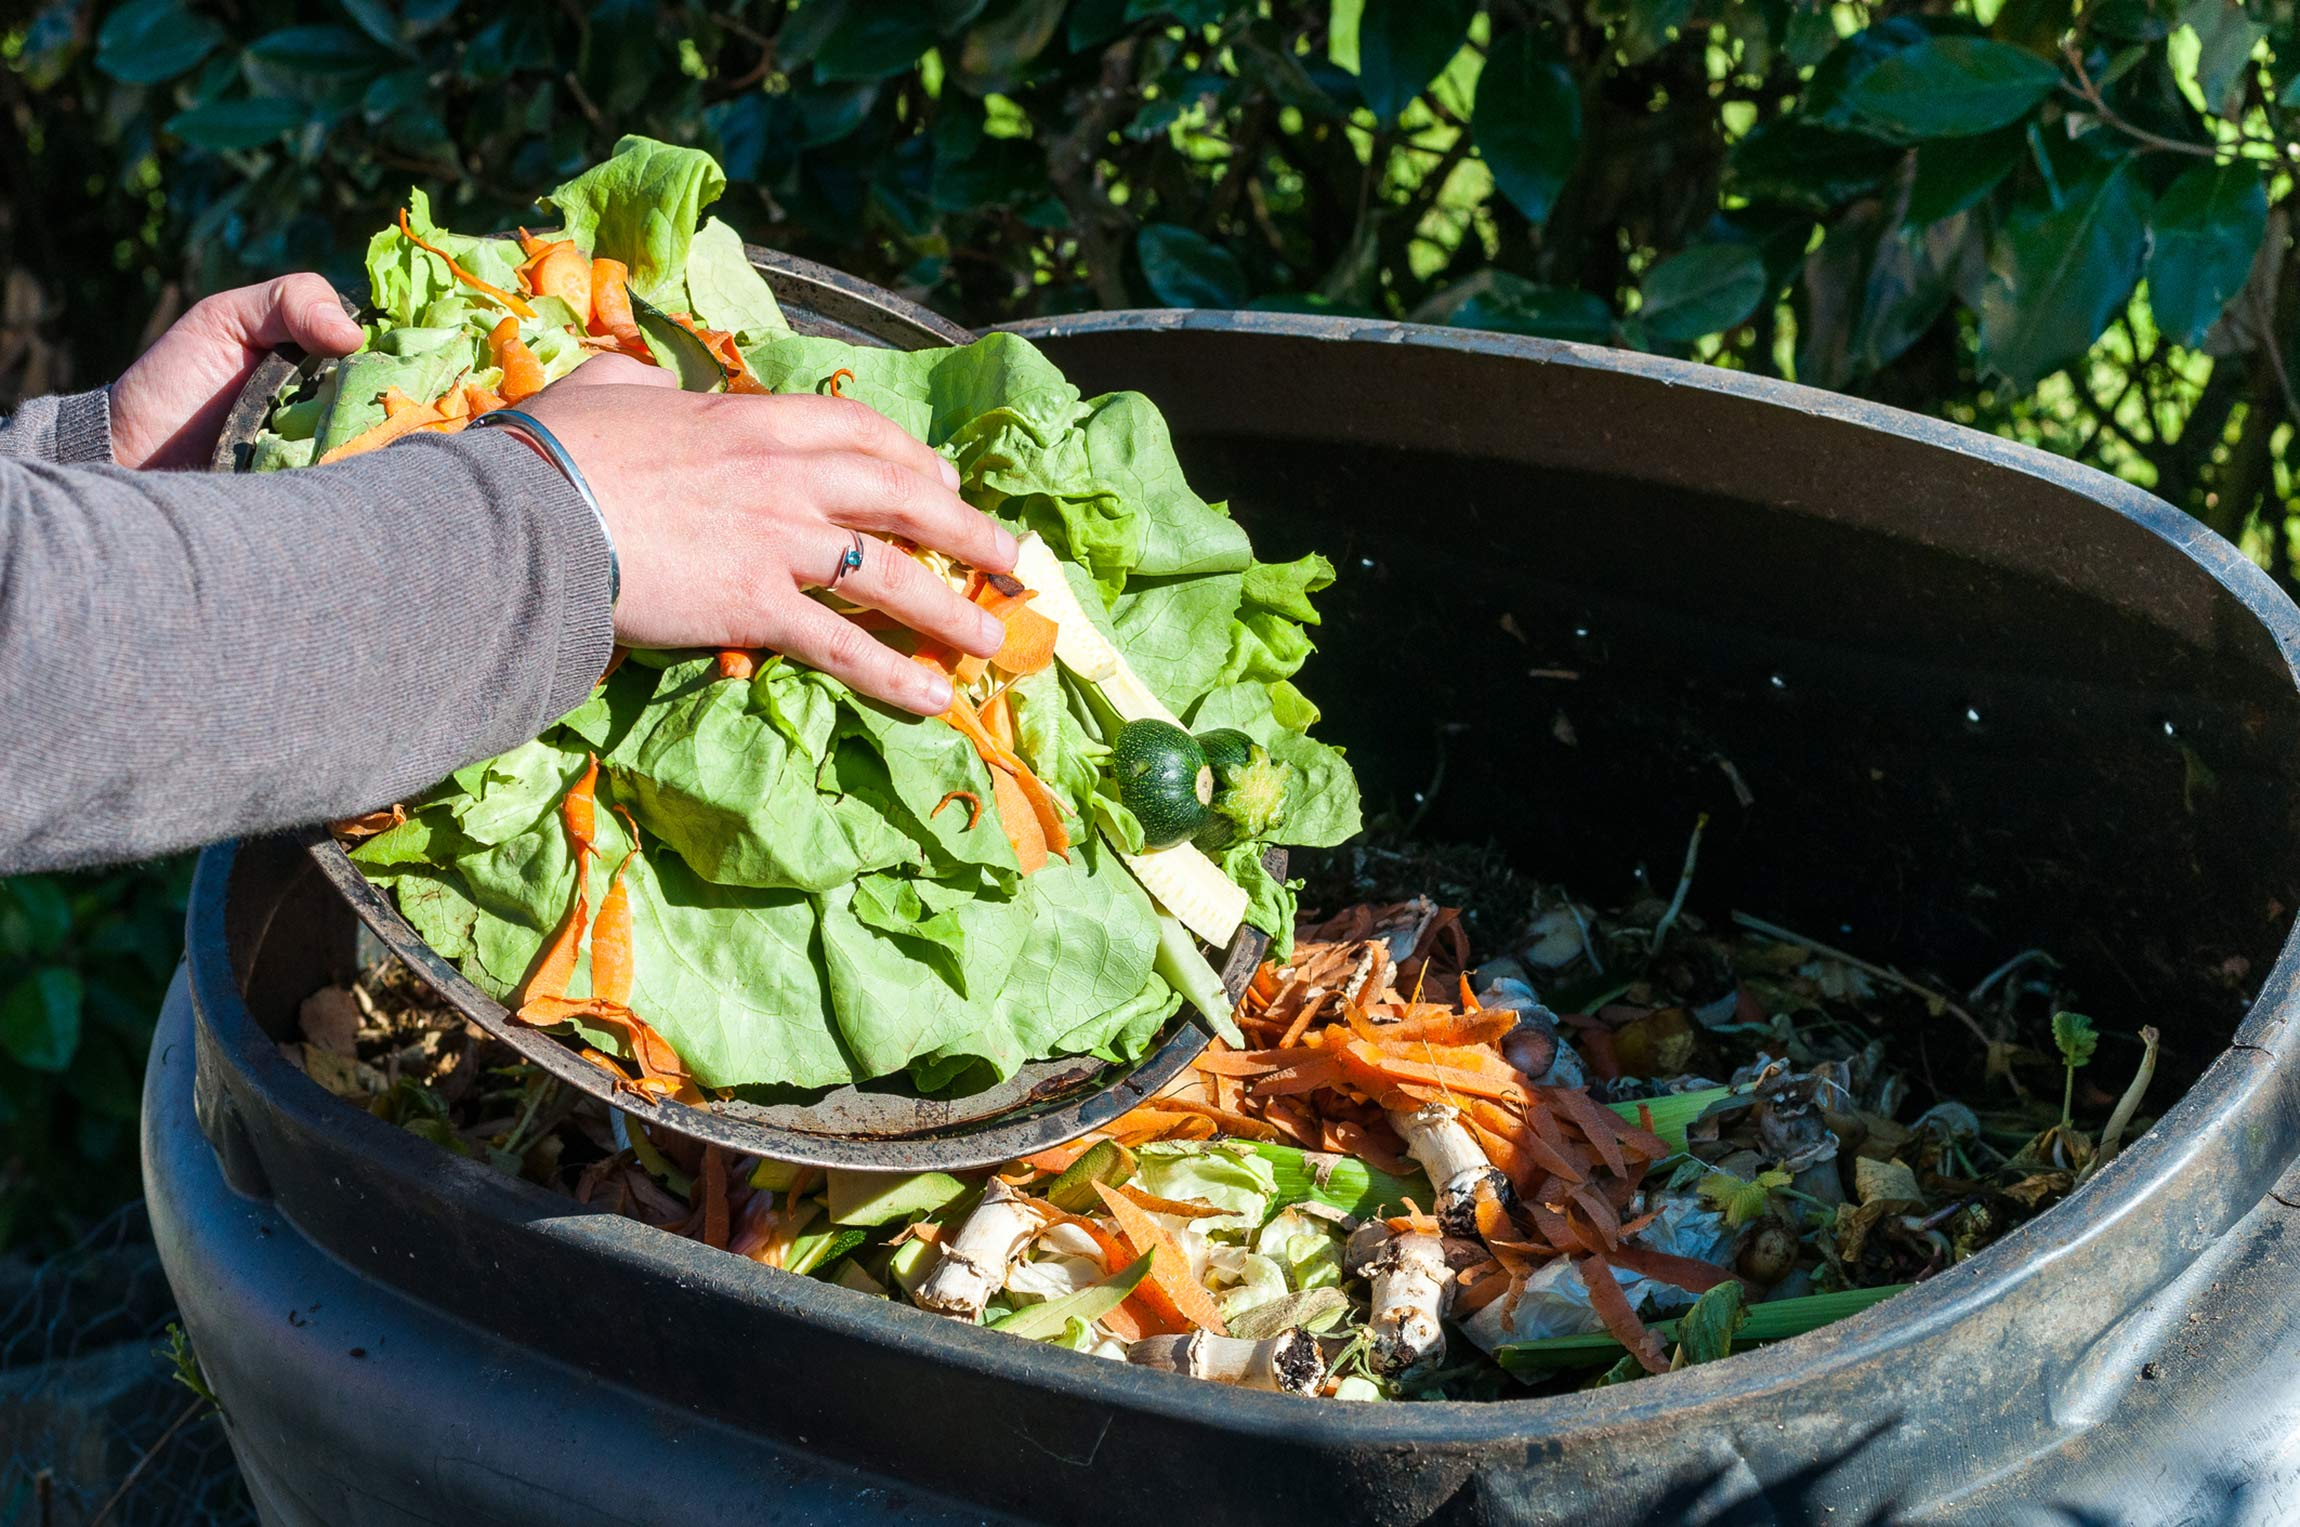 Throwing away produce scraps for compost